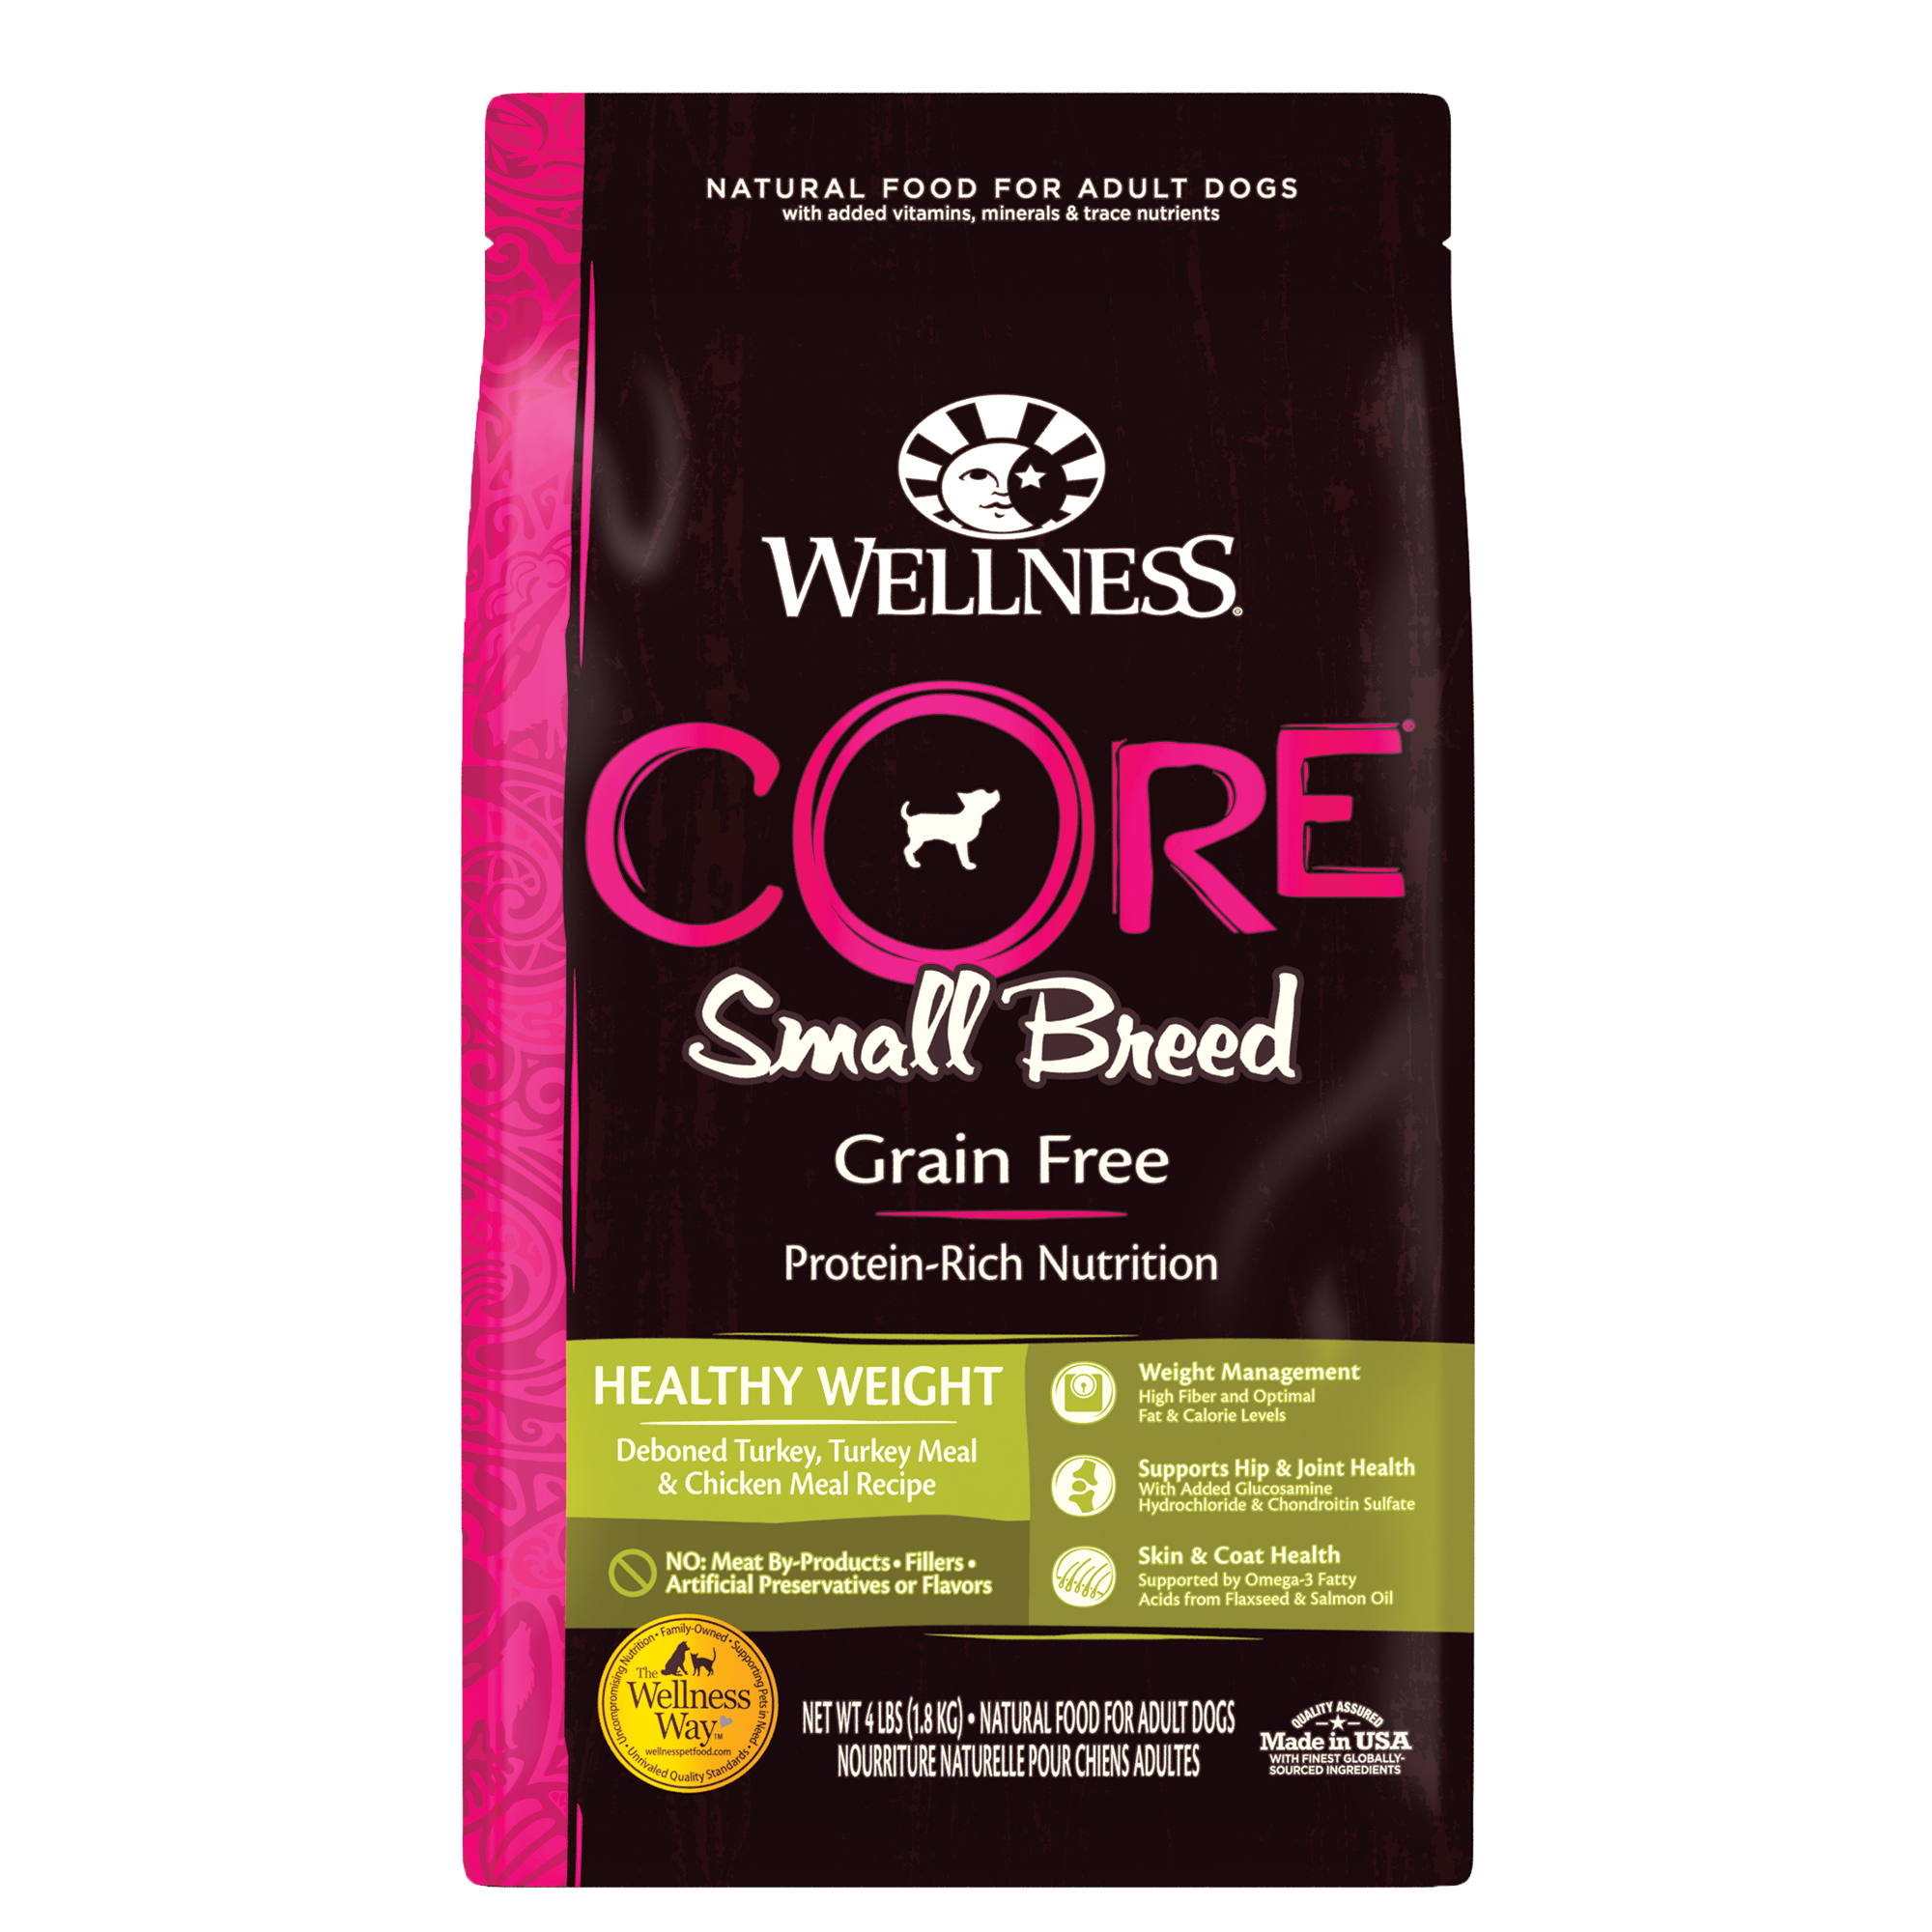 Wellness CORE Small Breed Healthy Weight dry dog food